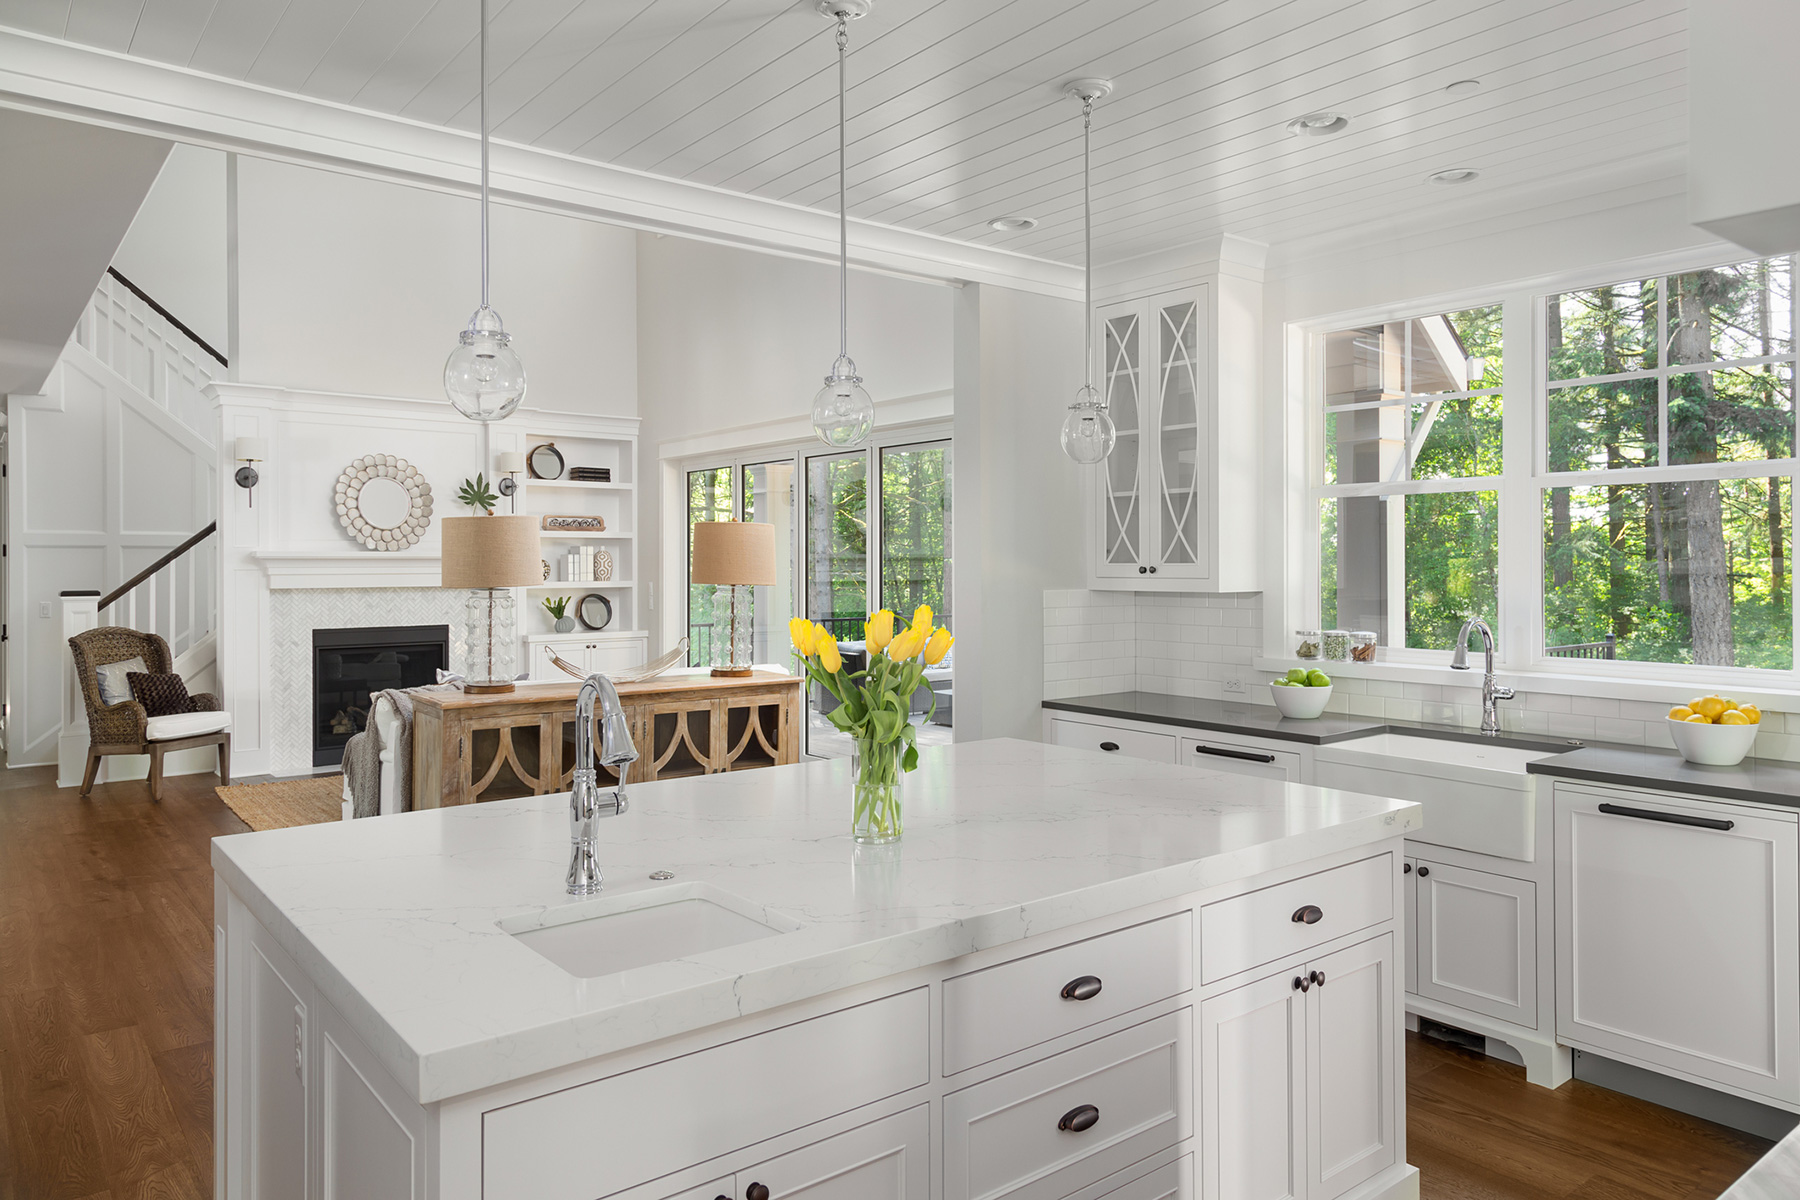 Why I M Totally Over Open Concept House Plans Sorry Not Sorry Chip And Joanna Gaines Real Simple,Patch Work Back Side Simple Blouse Back Neck Designs Images